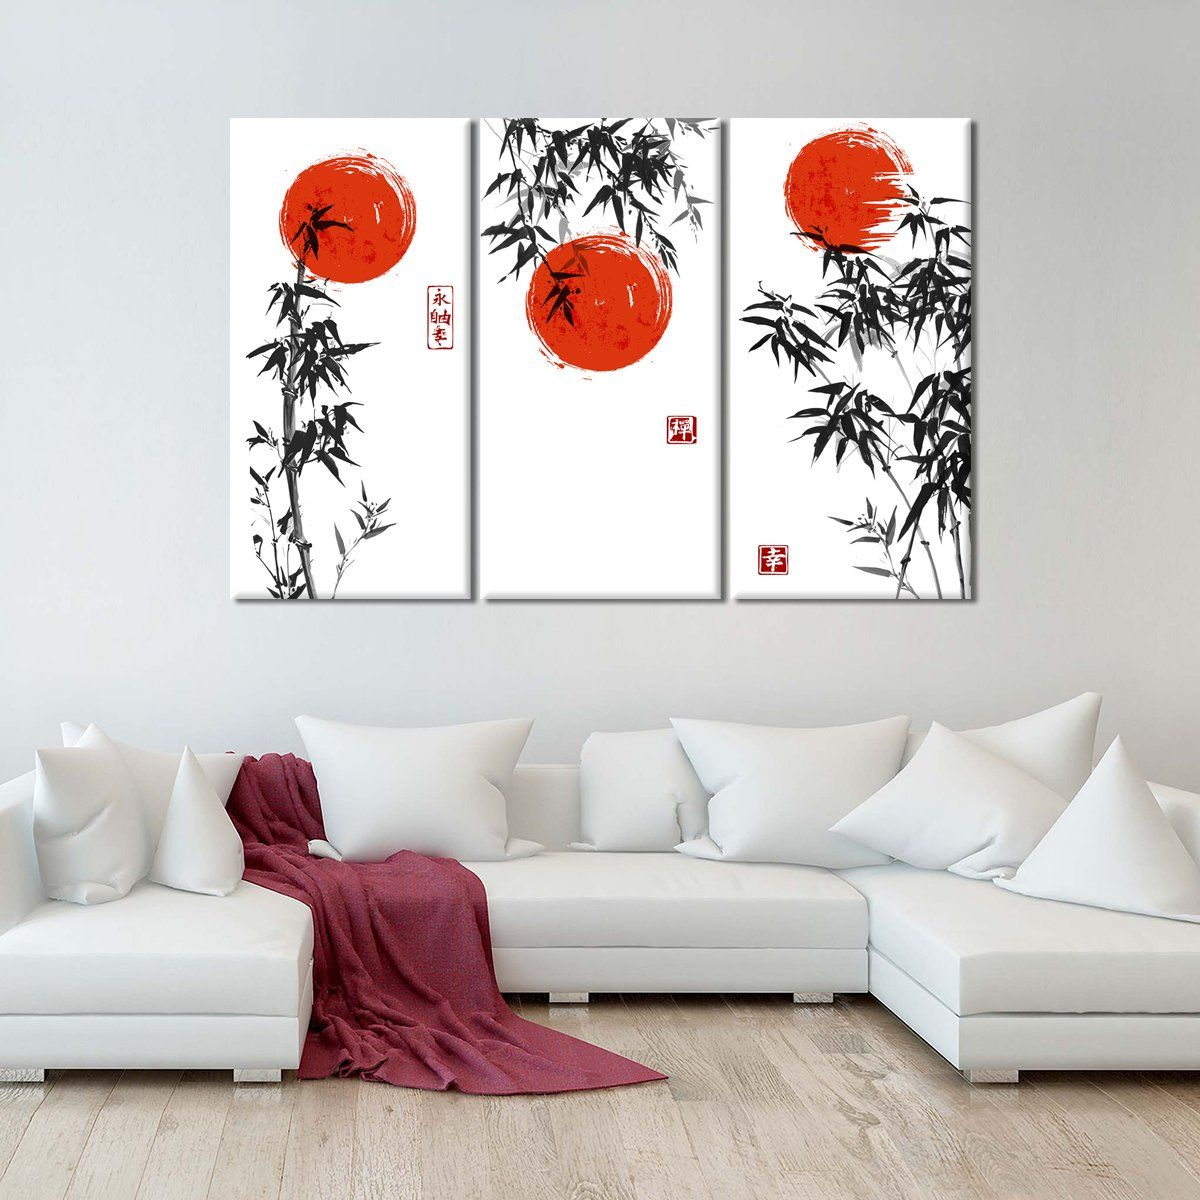 Japanese Bamboo Multi Panel Canvas Wall Art In 2021 Japanese Room Decor Japanese Wall Decor Japanese Wall Art